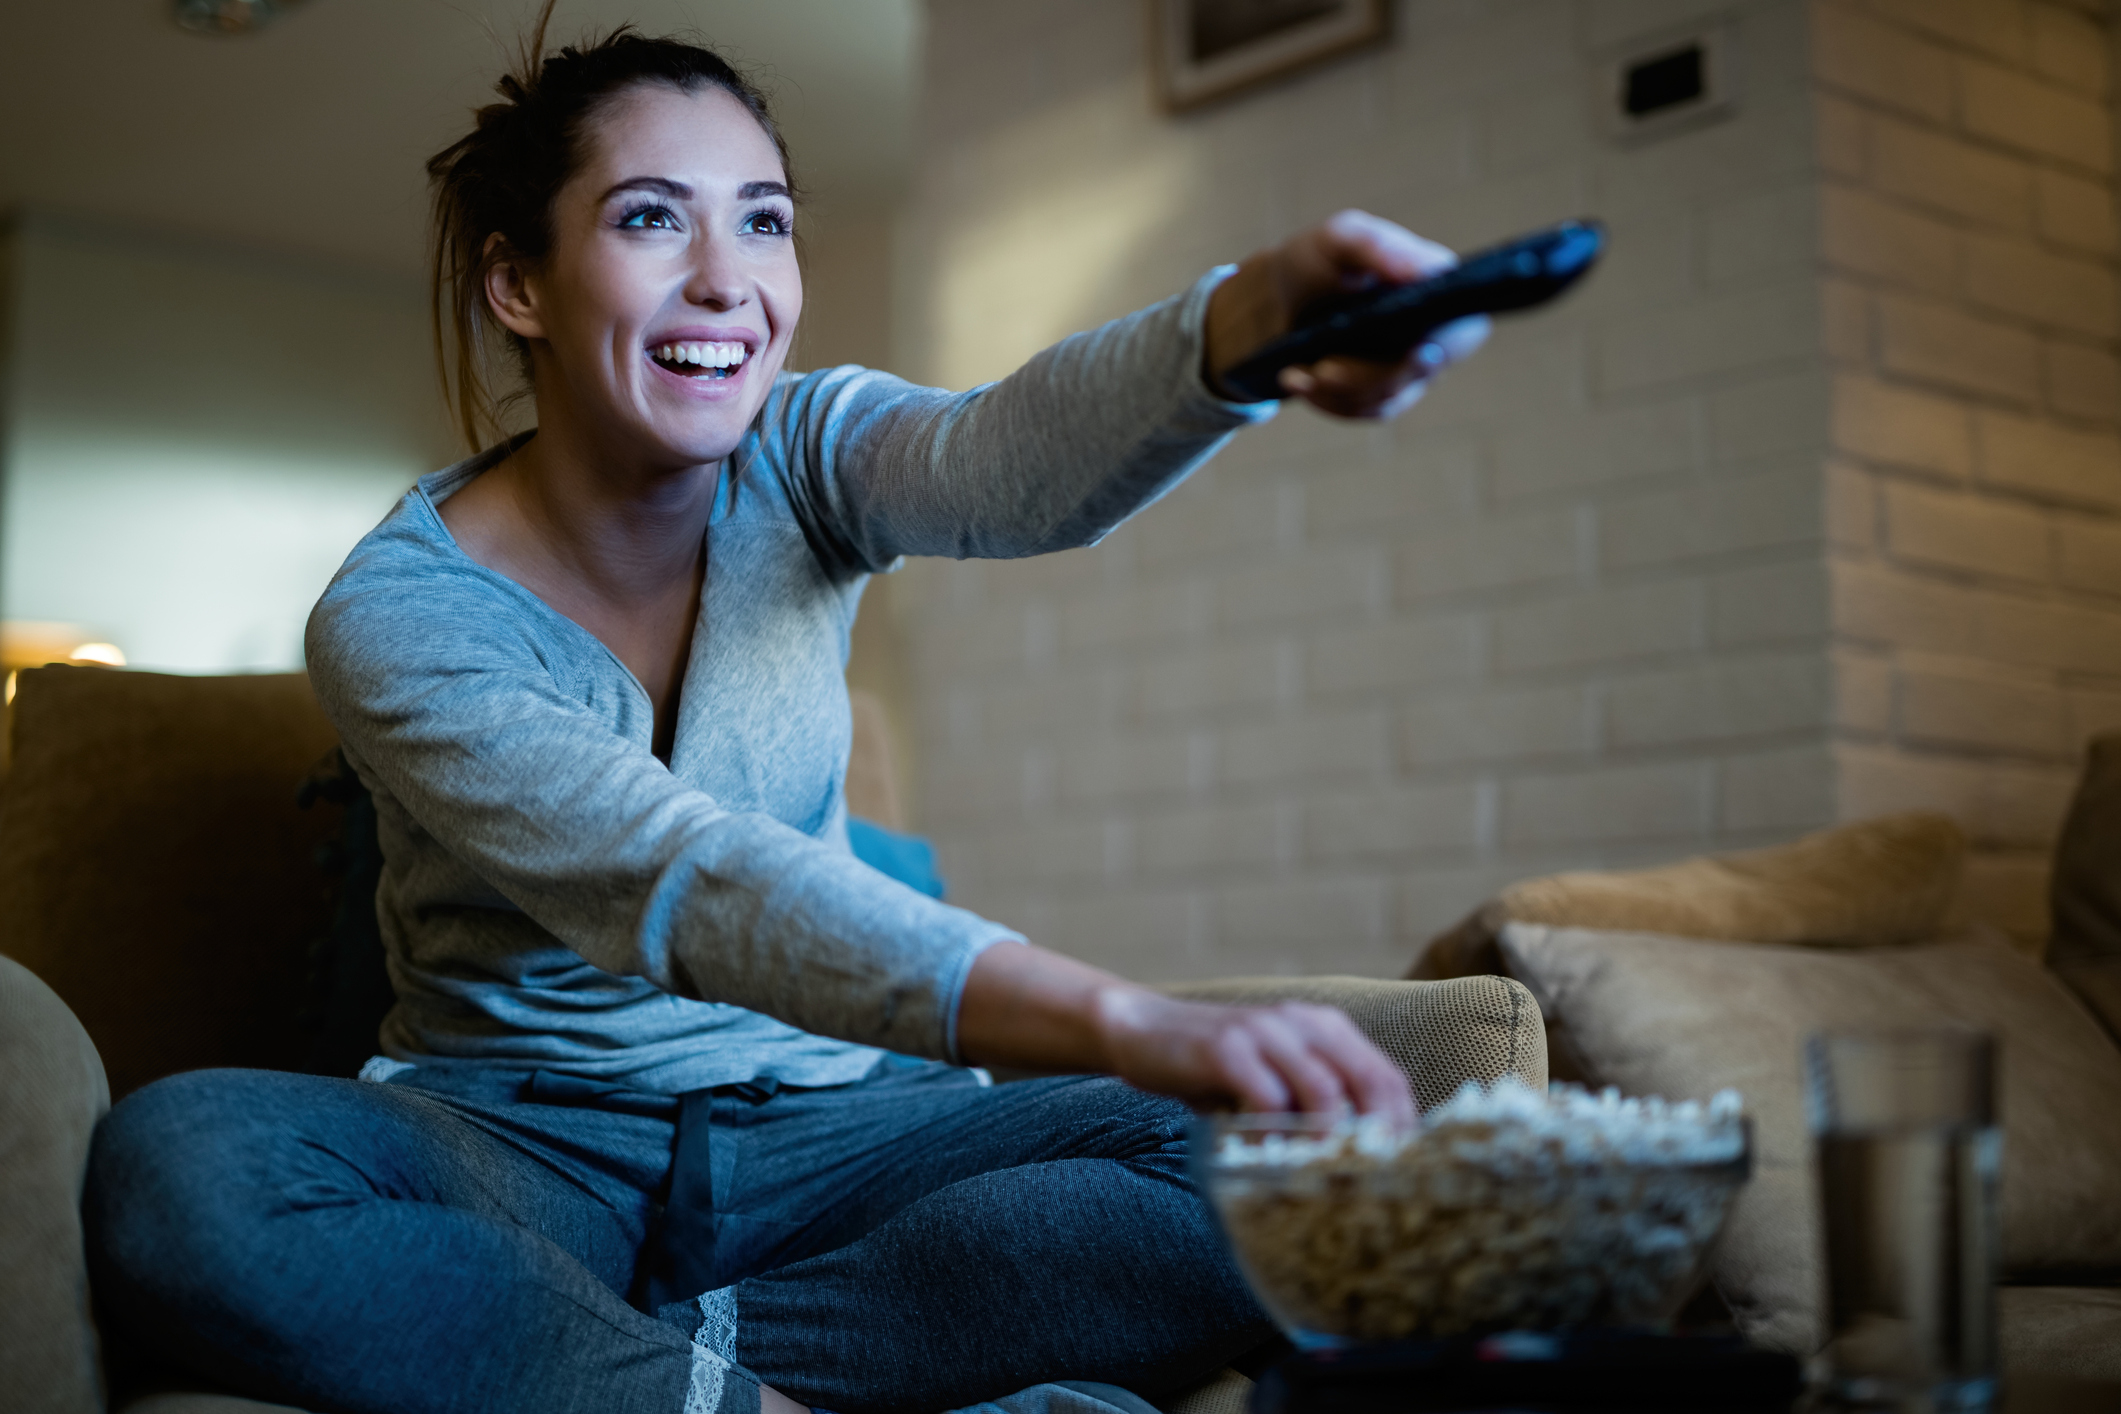 A woman pointing the remote at the TV while reaching for popcorn.